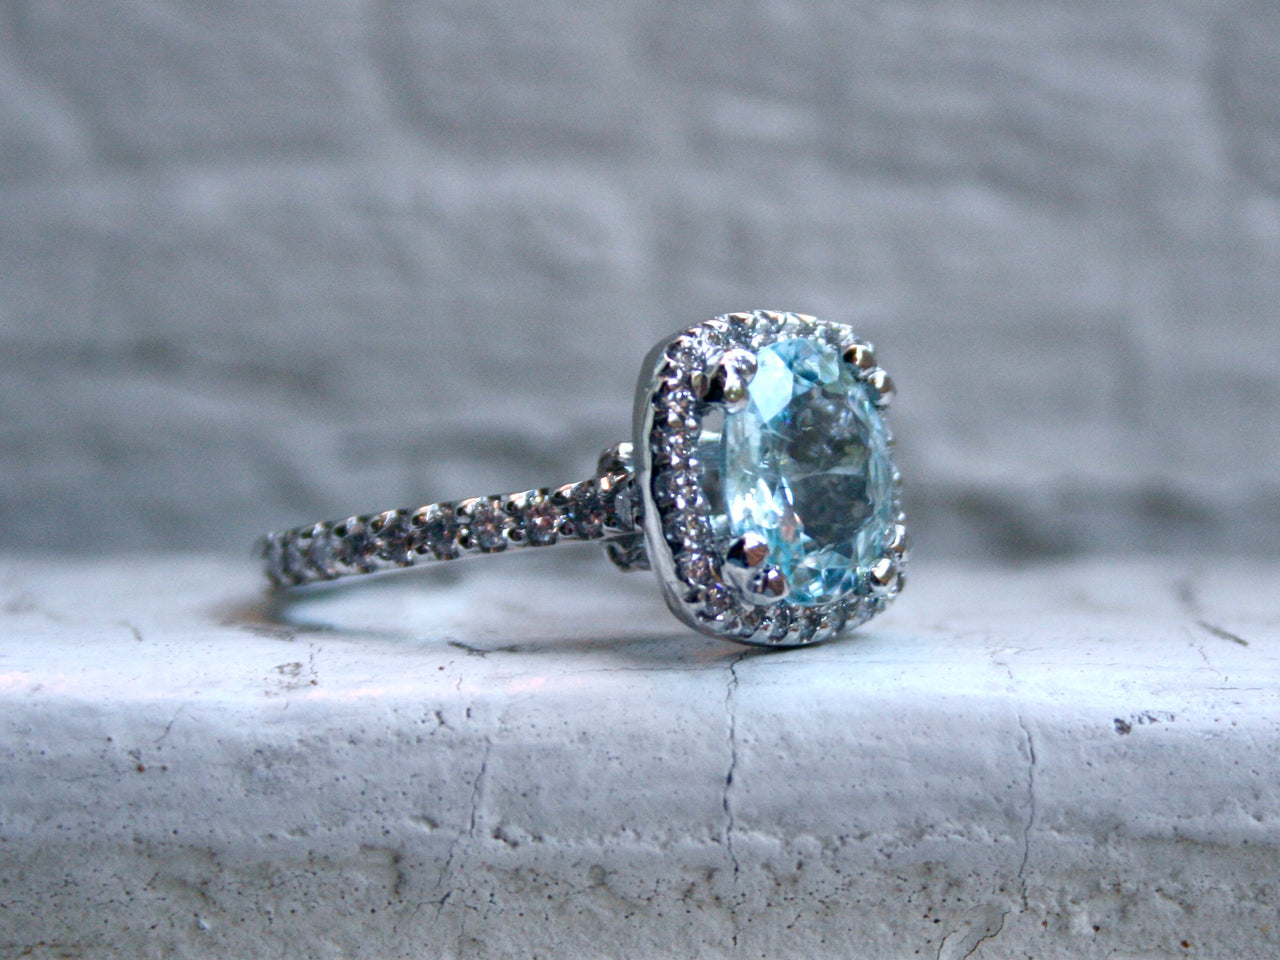 Vintage Platinum Diamond and Greenish Blue Paraiba Tourmaline Ring Engagement Ring  - 3.74ct.